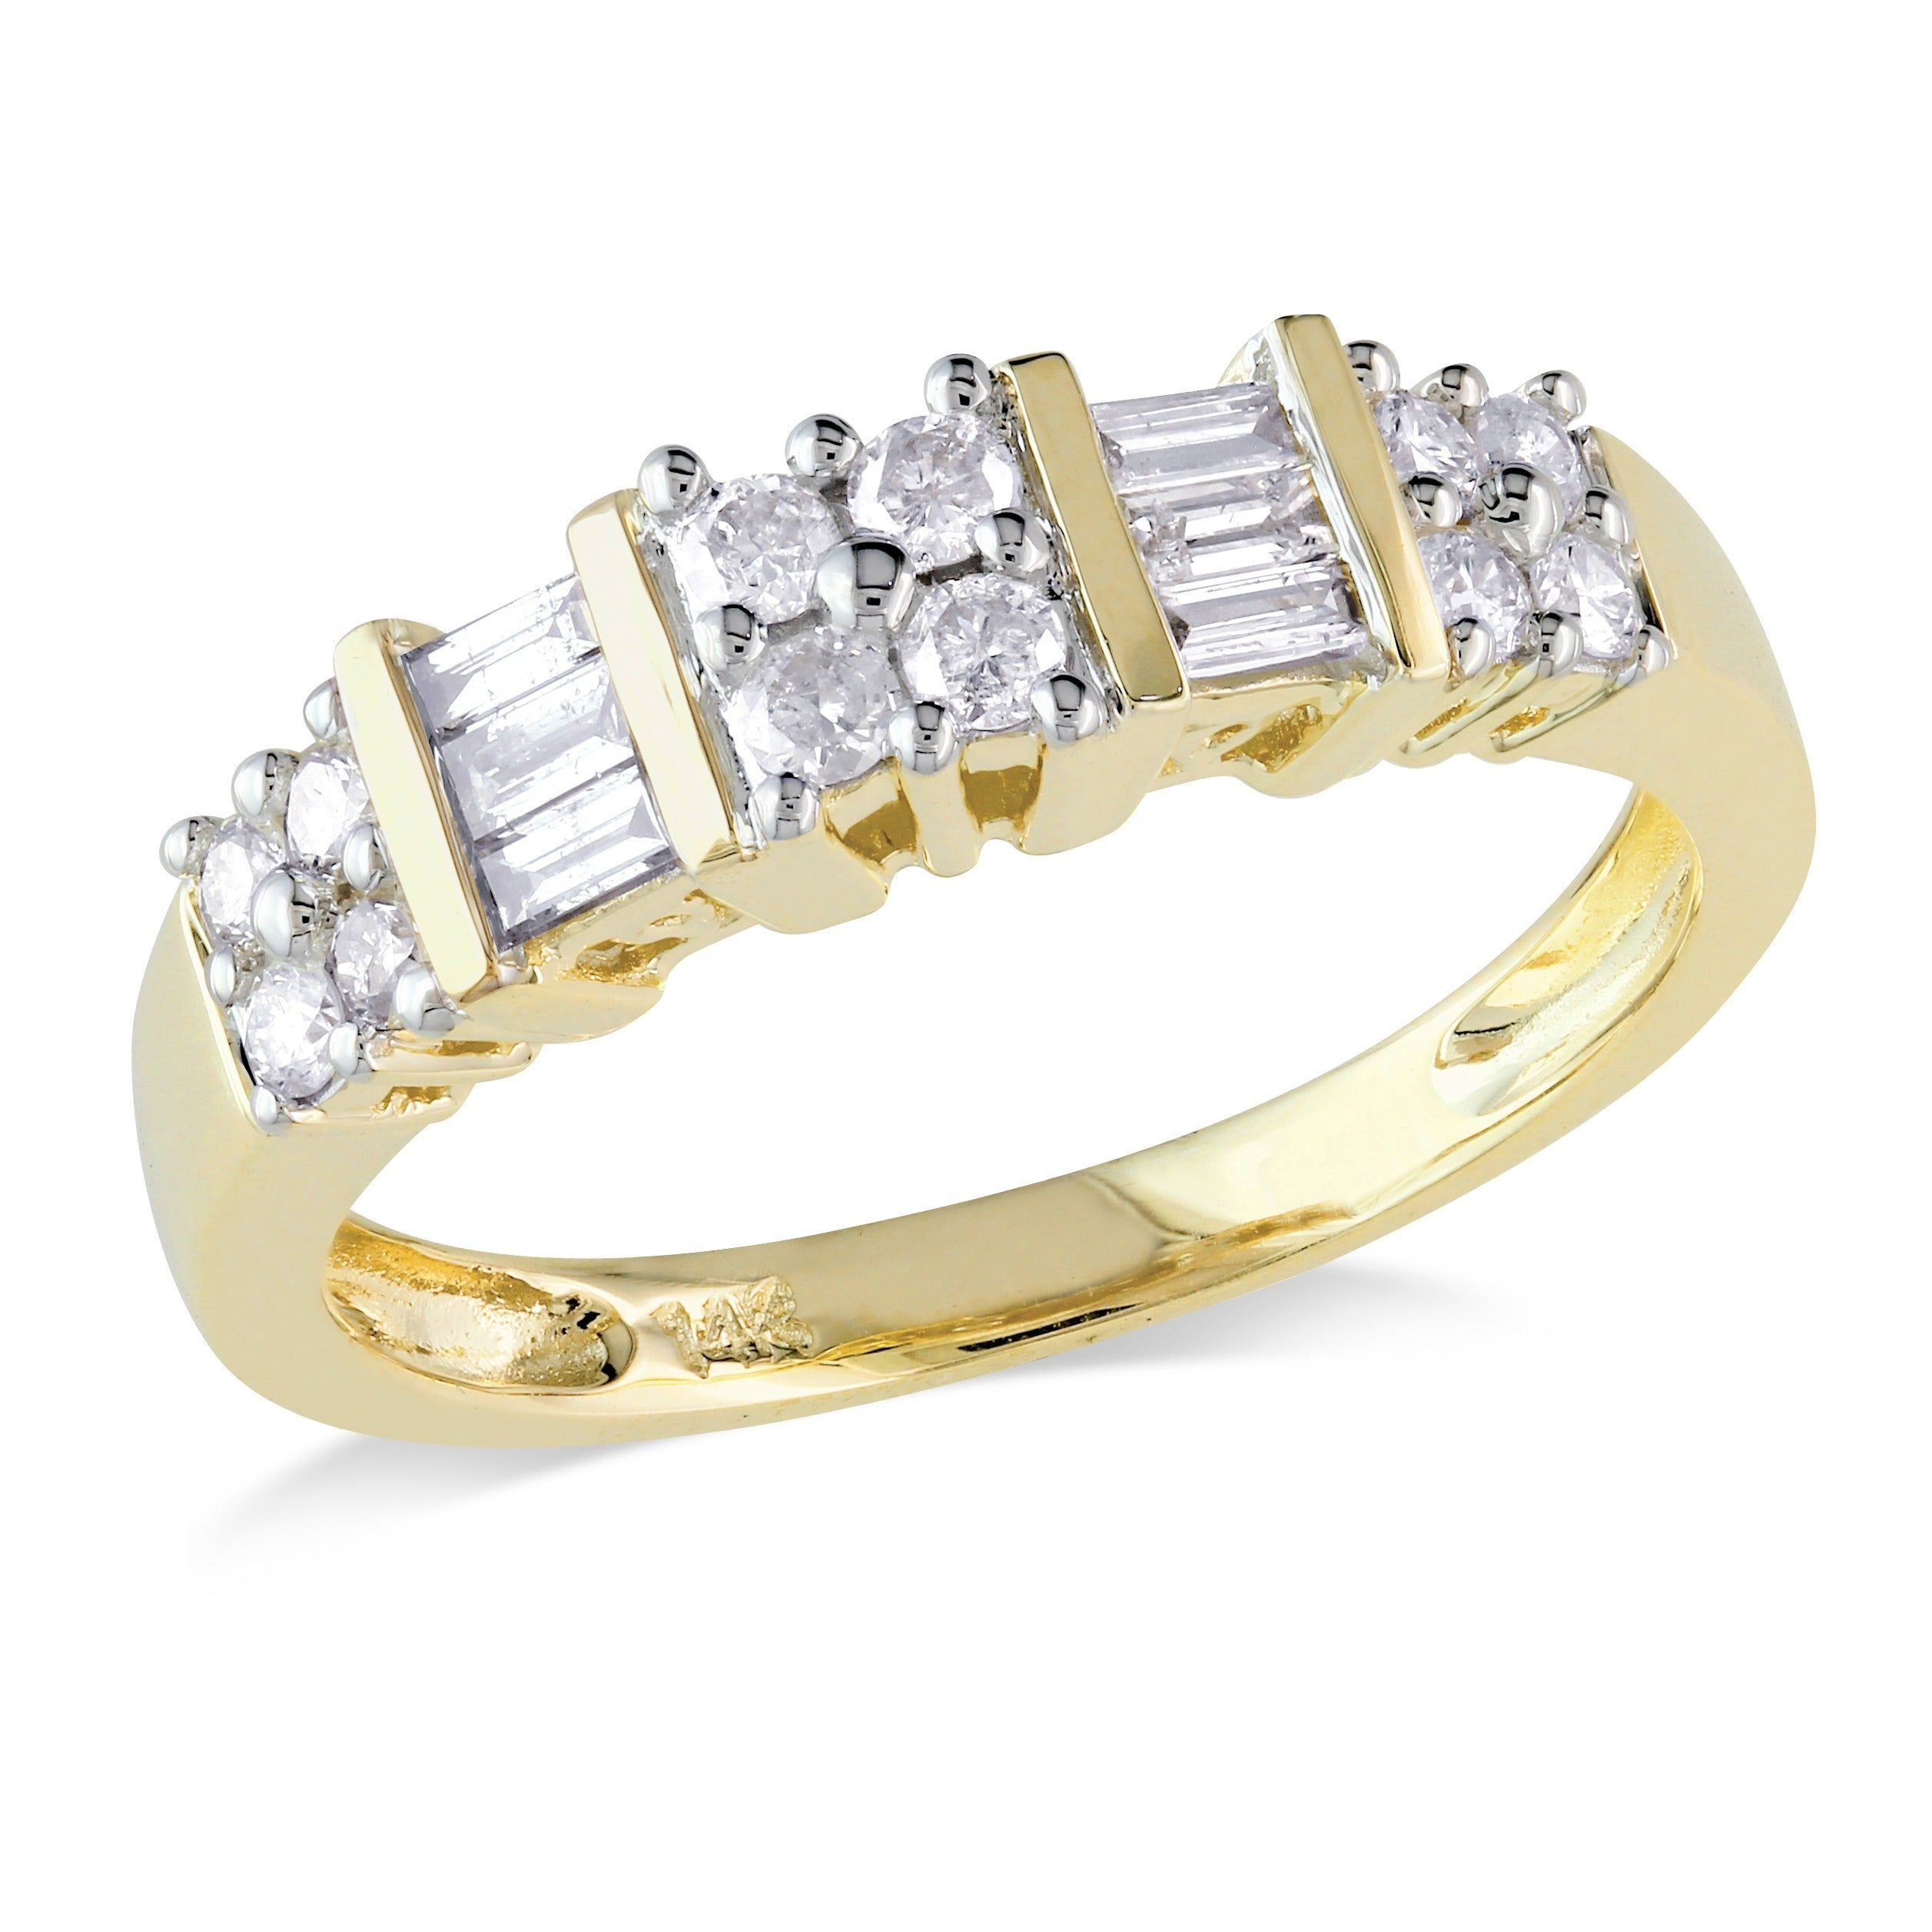 rings artemer diamond baguette wedding engagement dainty lineup diamonds products band on finger ring